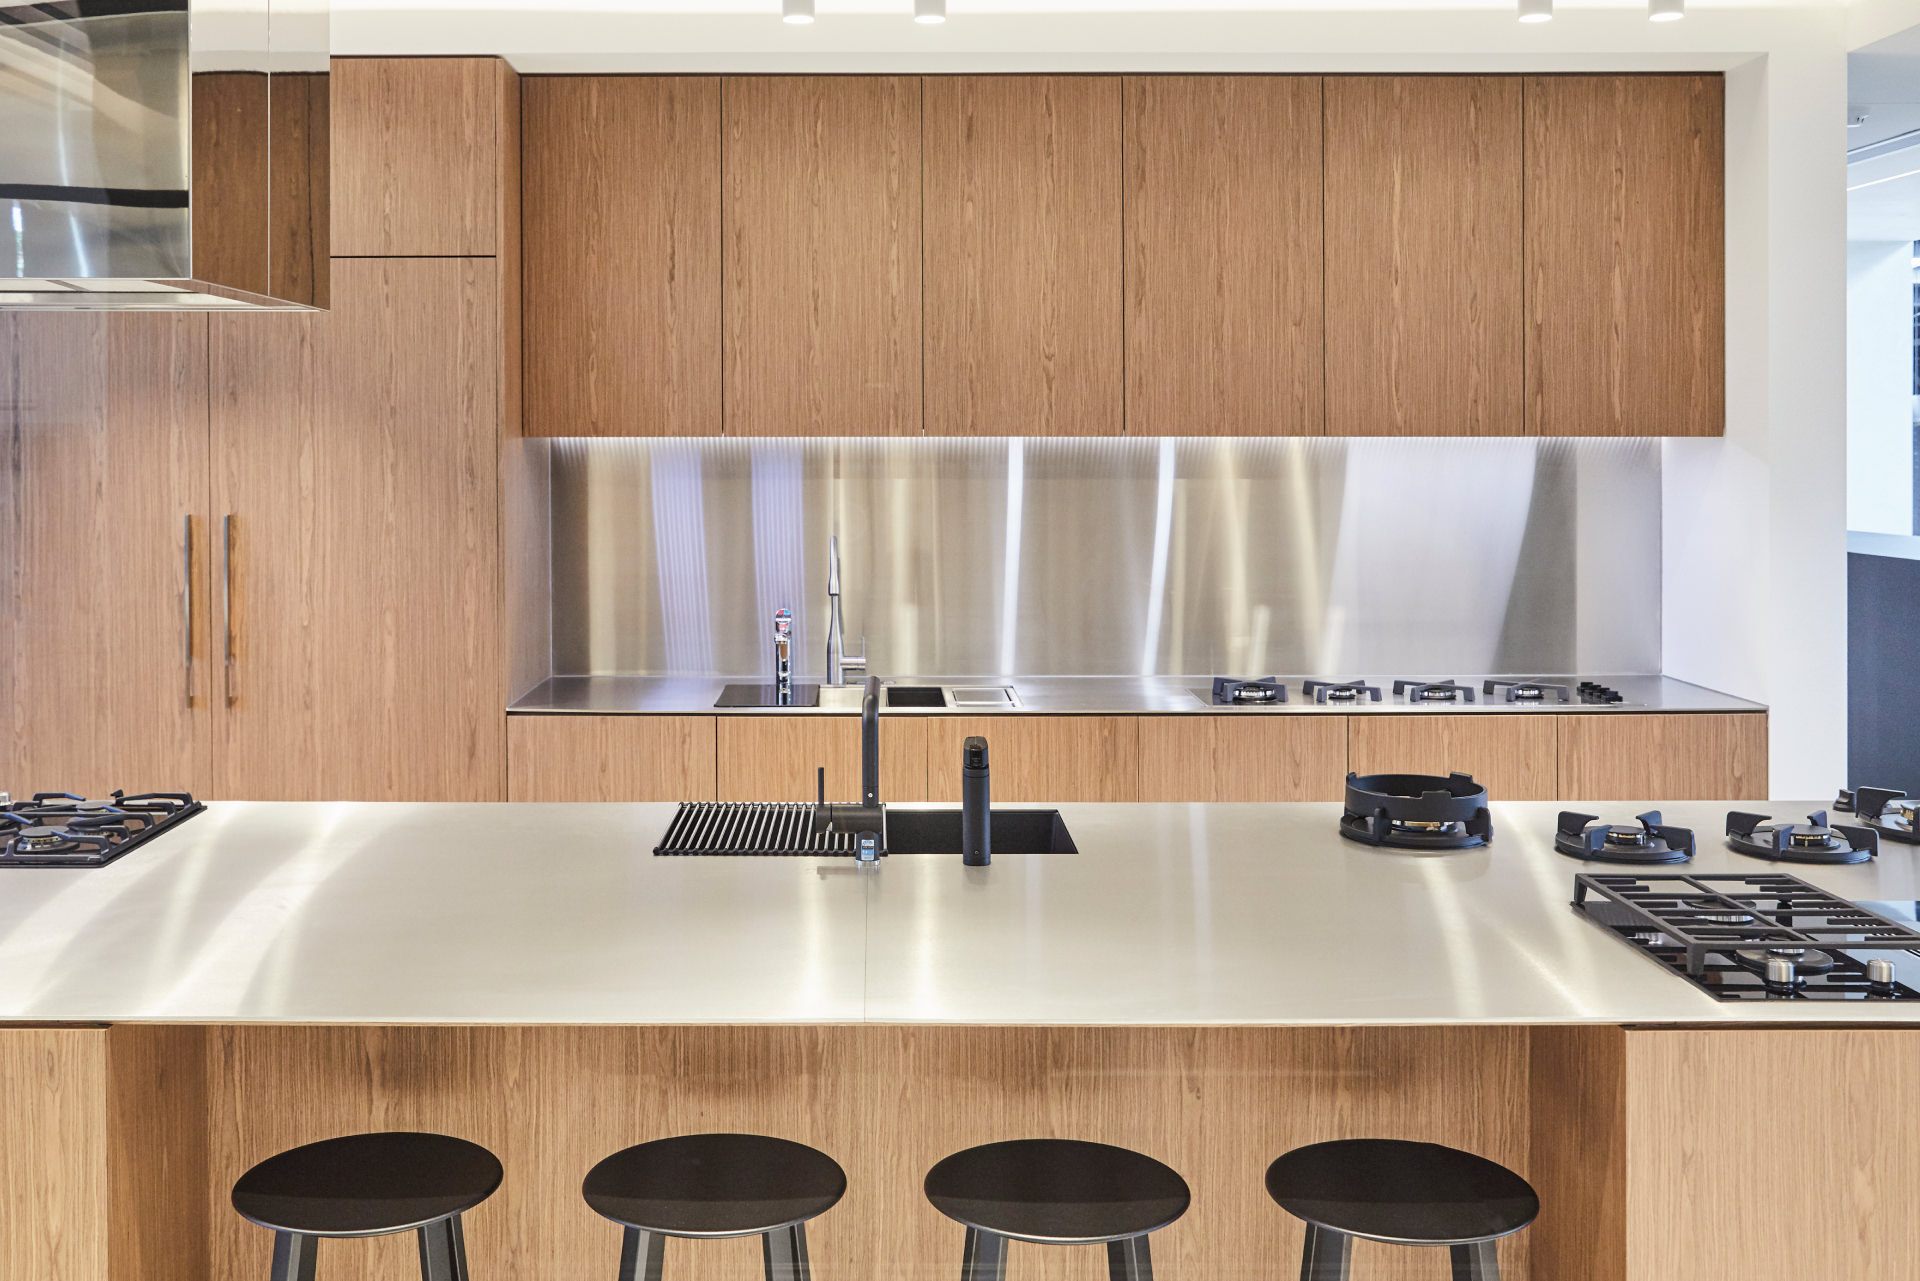 Cera Stribley Architecture Interior Design Winning Appliances Richmond interior wooden kitchen